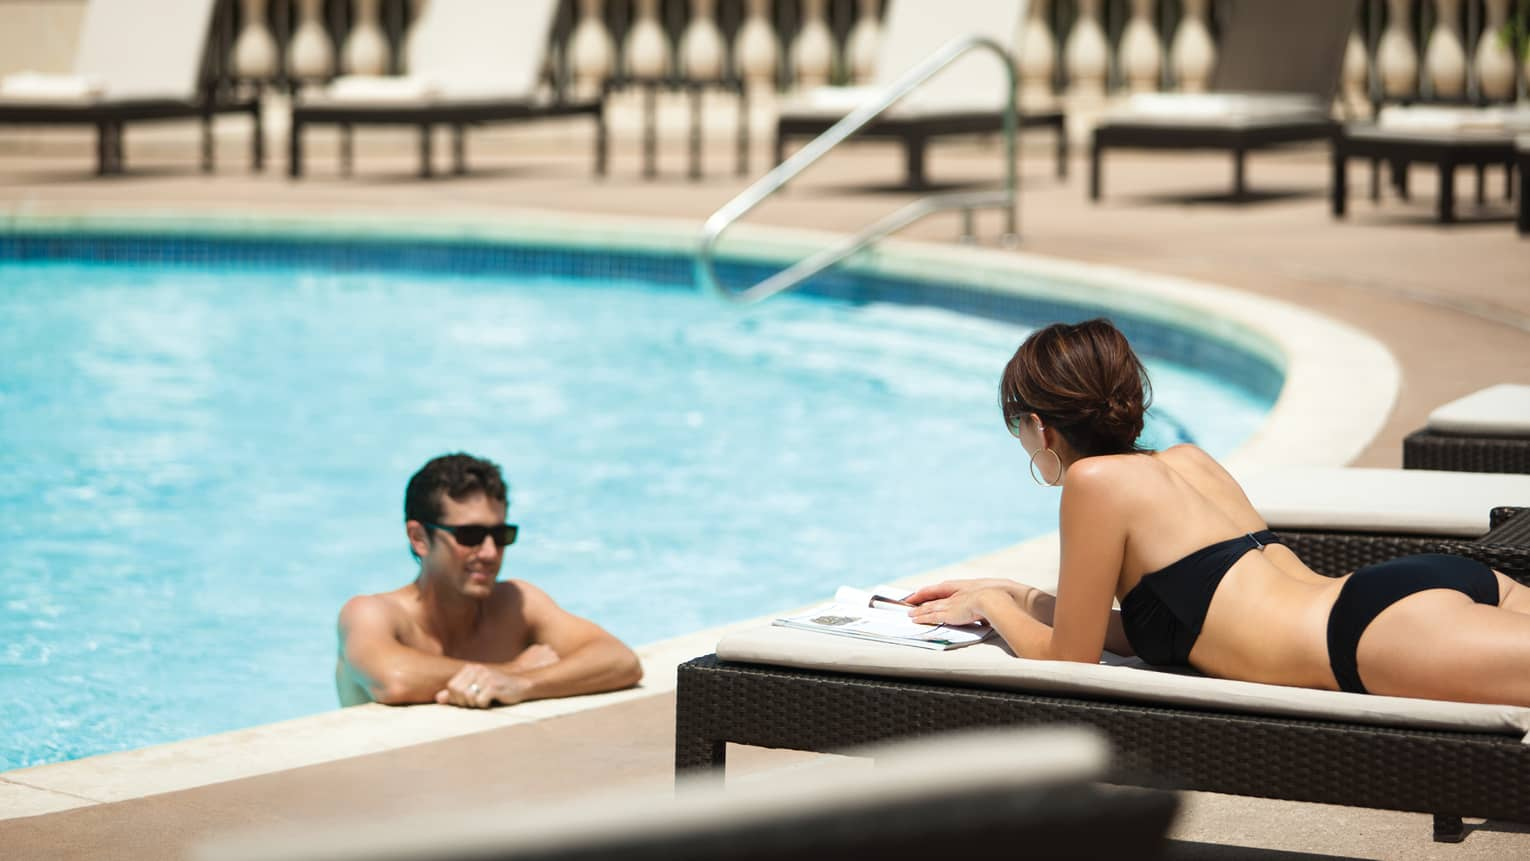 Man wades at edge of outdoor swimming pool, looks up at woman lying on deck chair